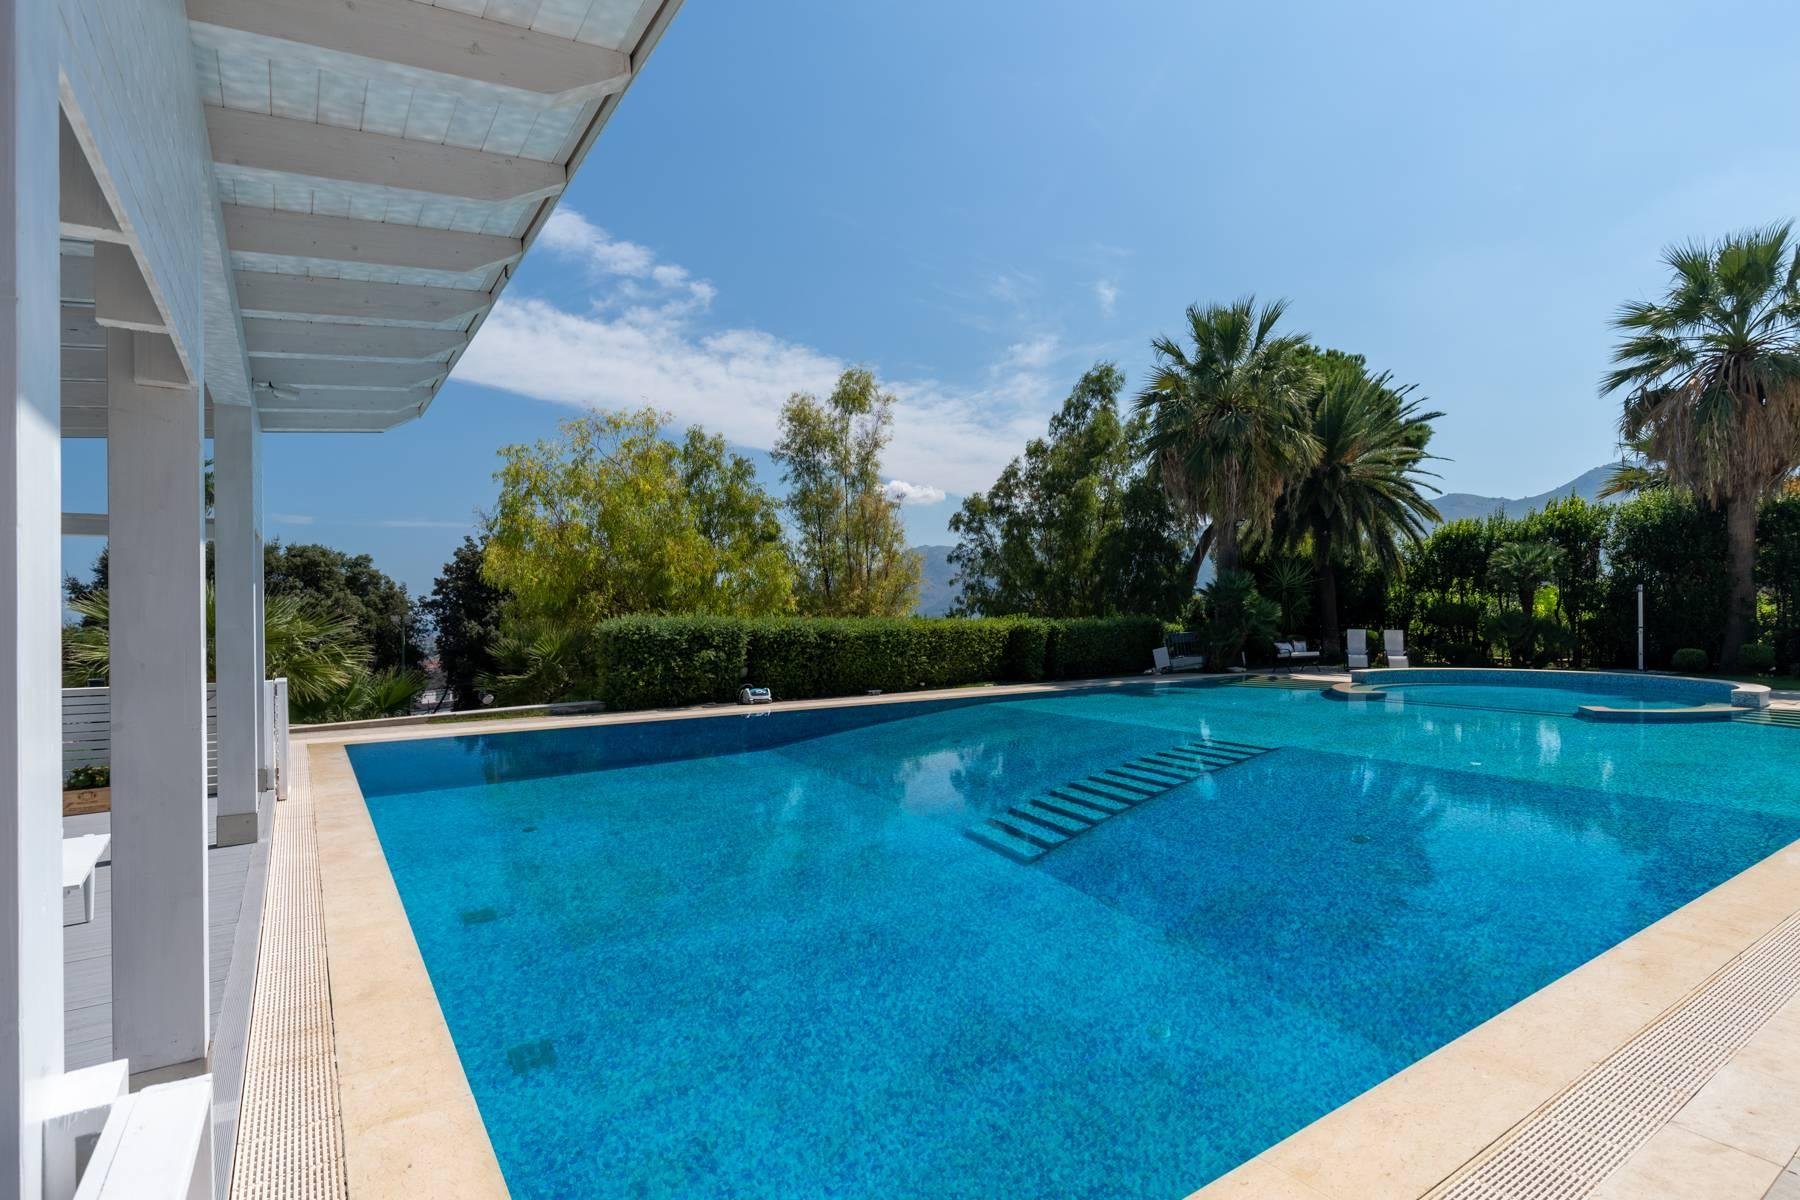 Luxurious Villa in Monreale with breathtaking views overlooking the Gulf of Palermo - 4